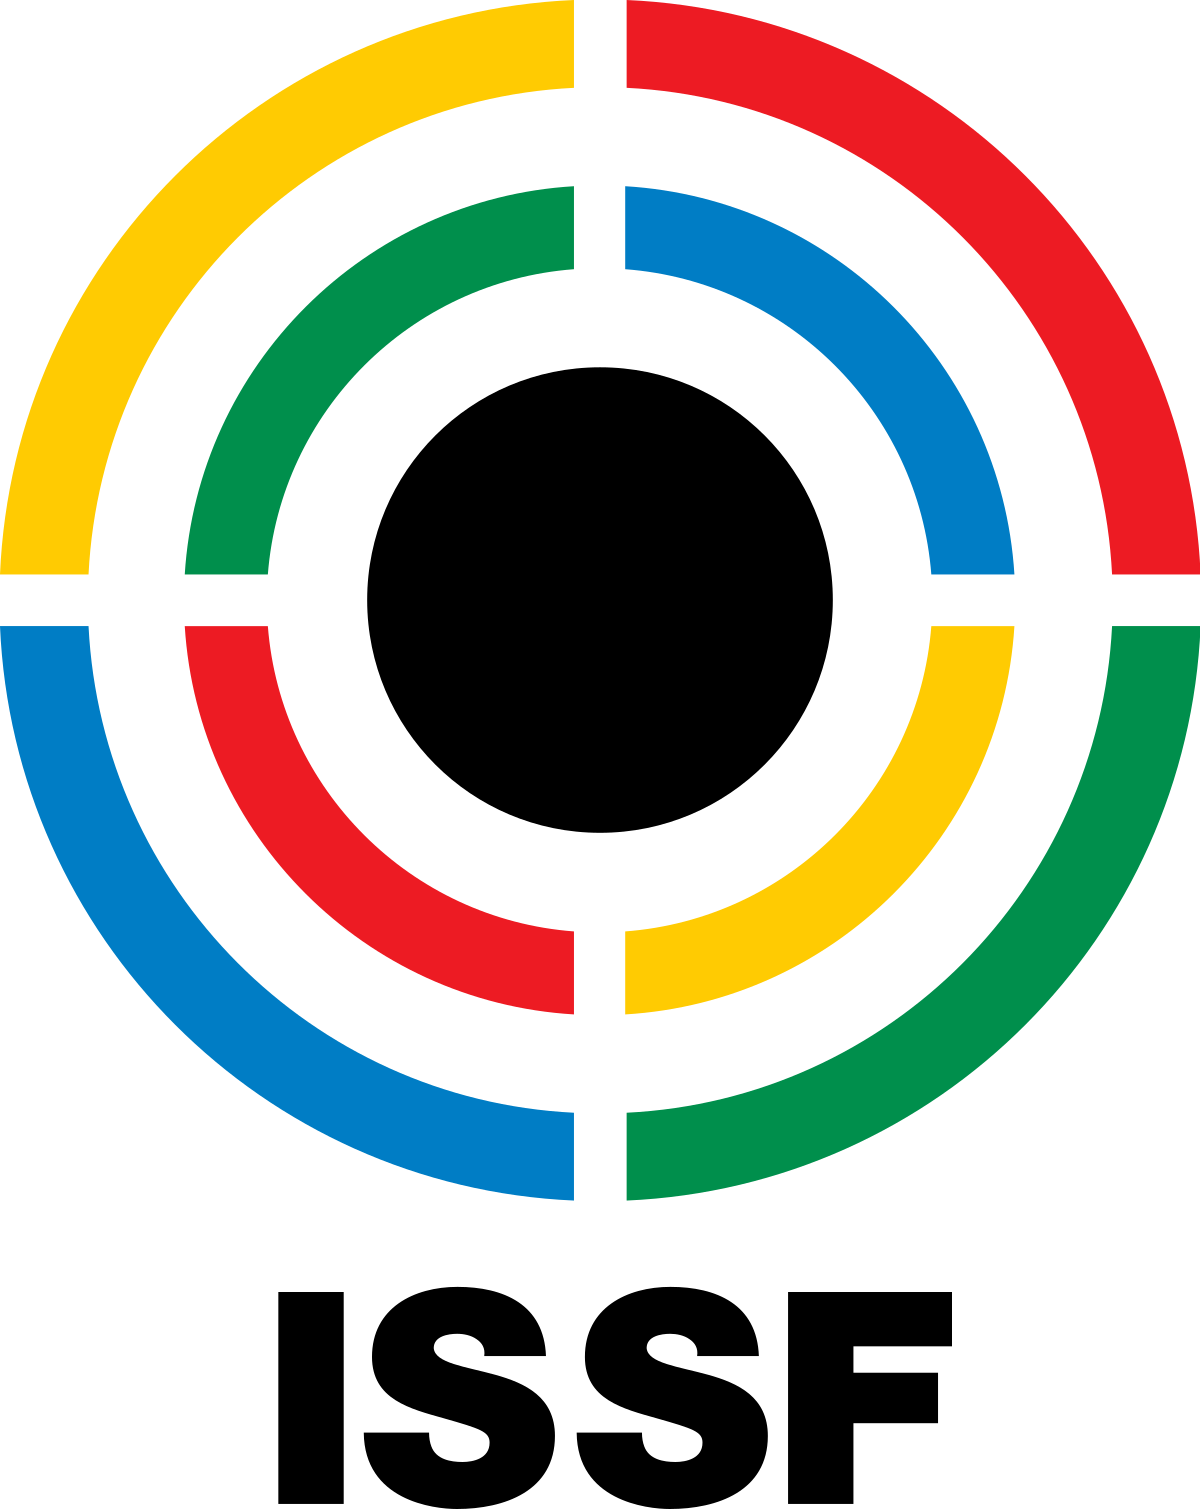 Bidding window opens for ISSF events from 2021 to 2024